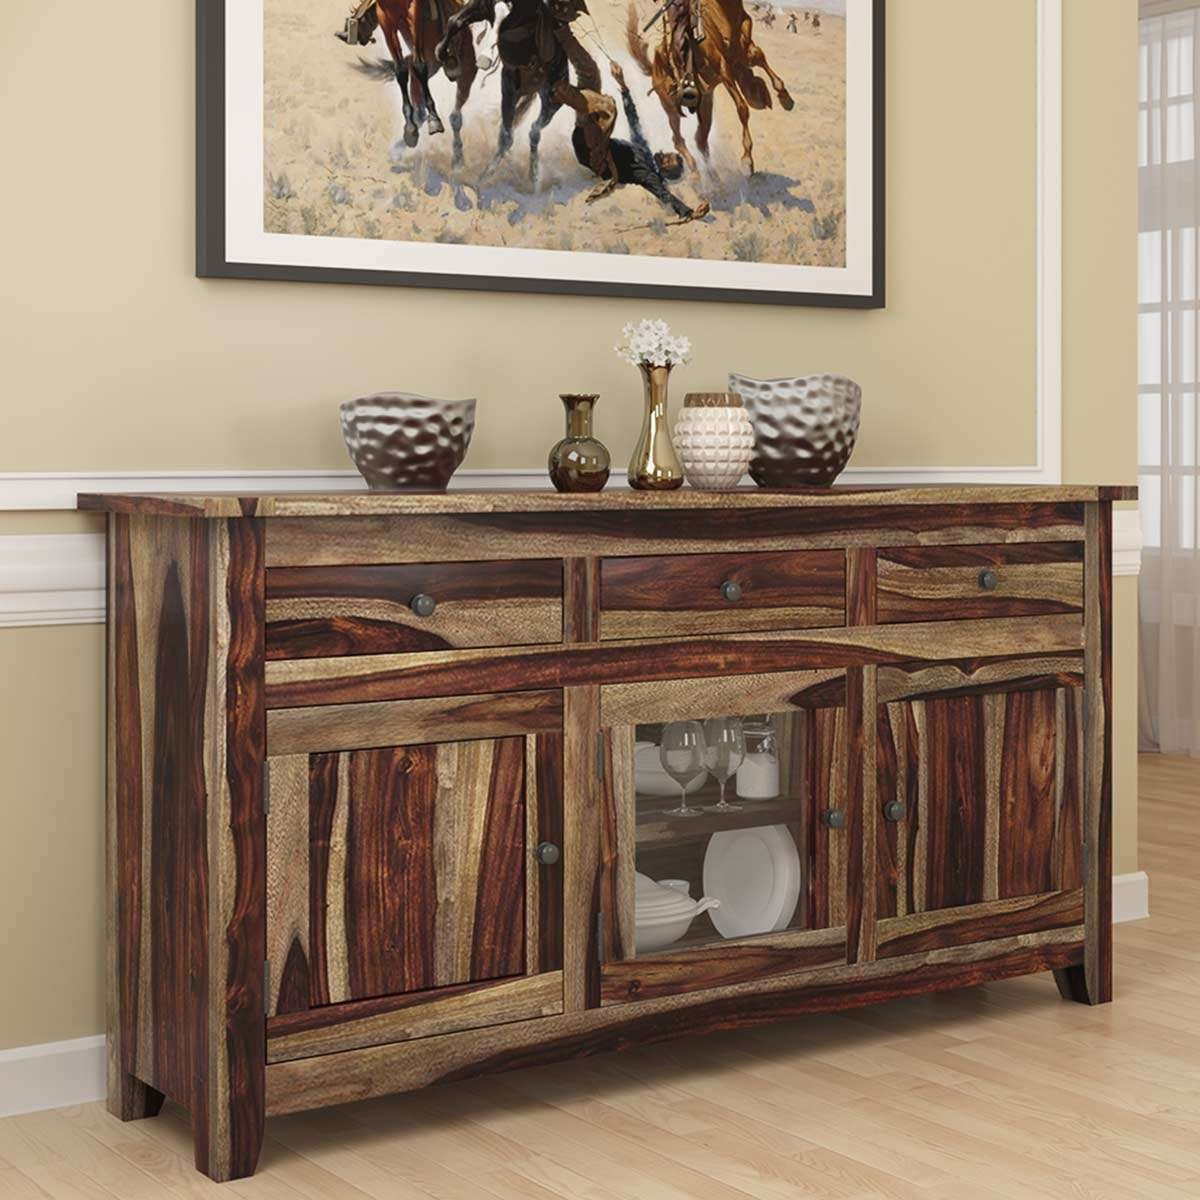 Modern Rustic Solid Wood Glass Door 3 Drawer Sideboard Cabinet Intended For Rustic Sideboards (View 7 of 20)